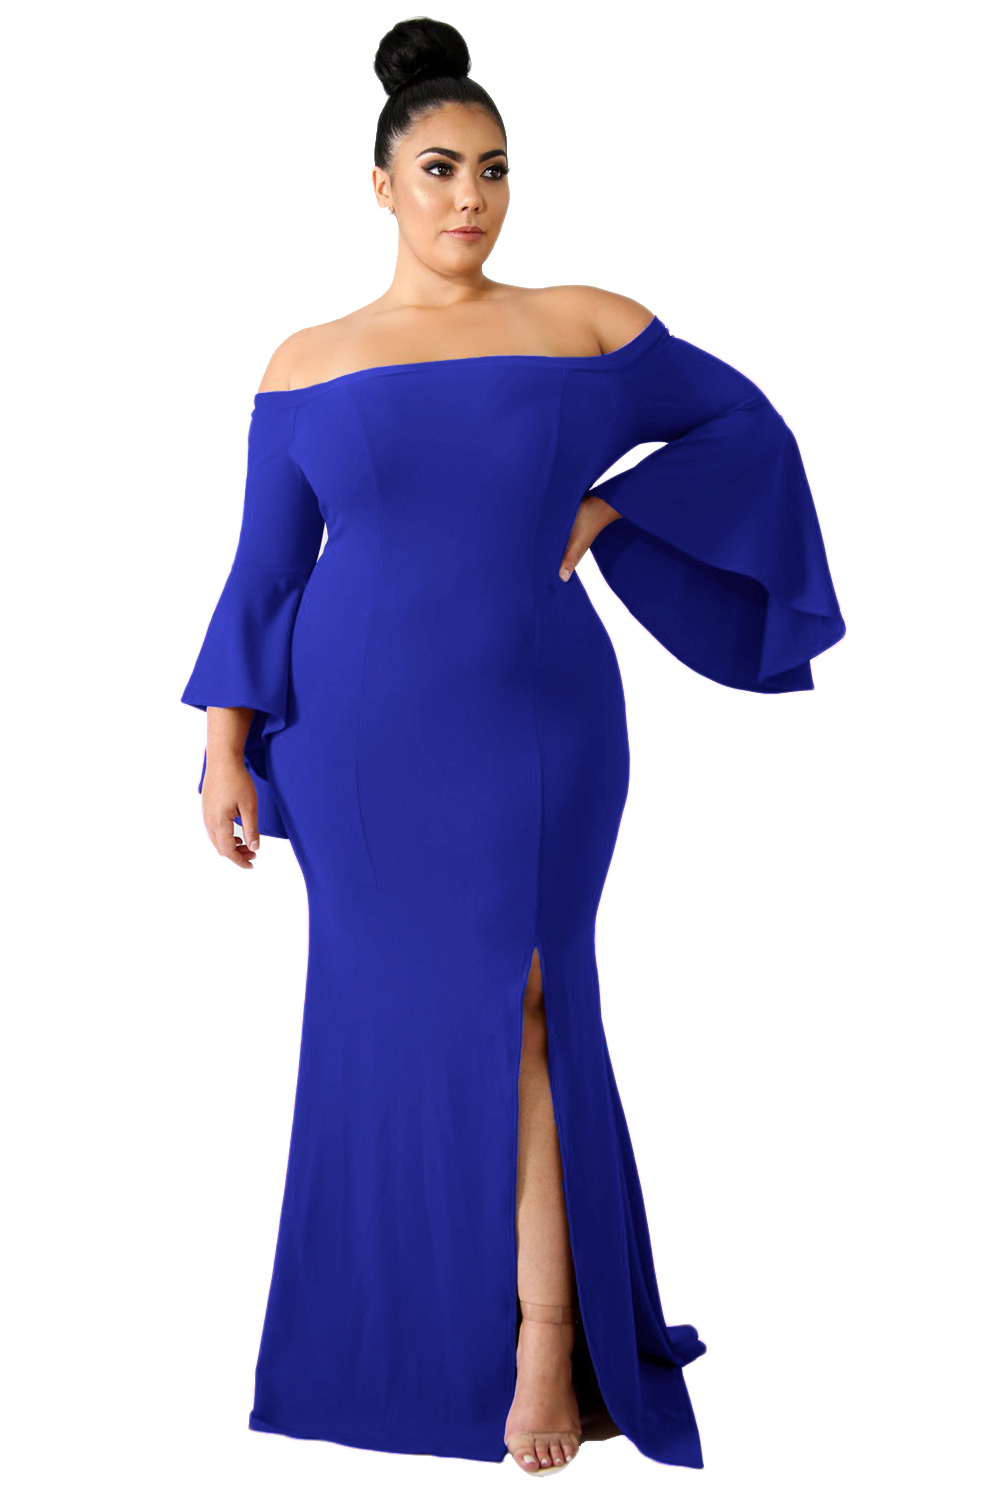 US$35.45 Zkess Chic Blue Off Shoulder Slit Plus Size Mermaid Dress